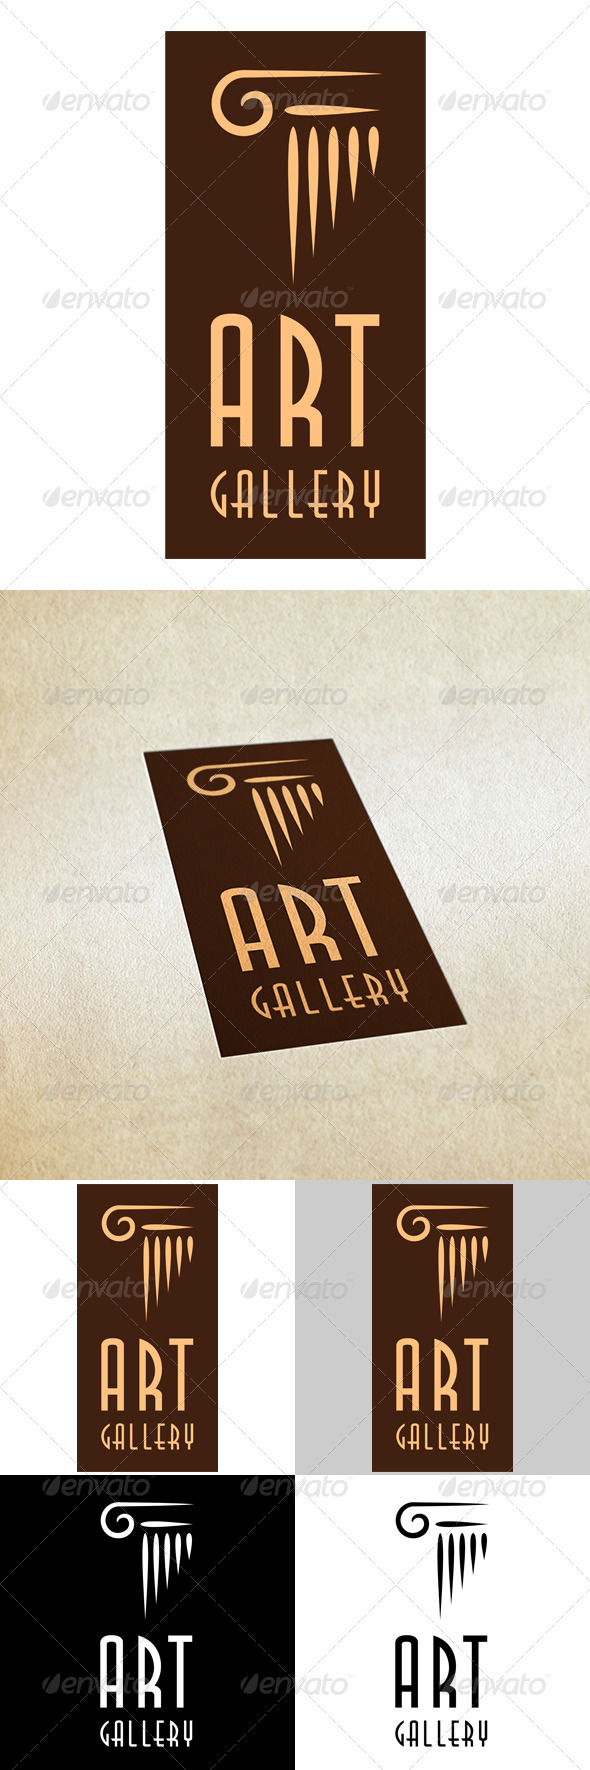 Art Gallery - Vector Abstract